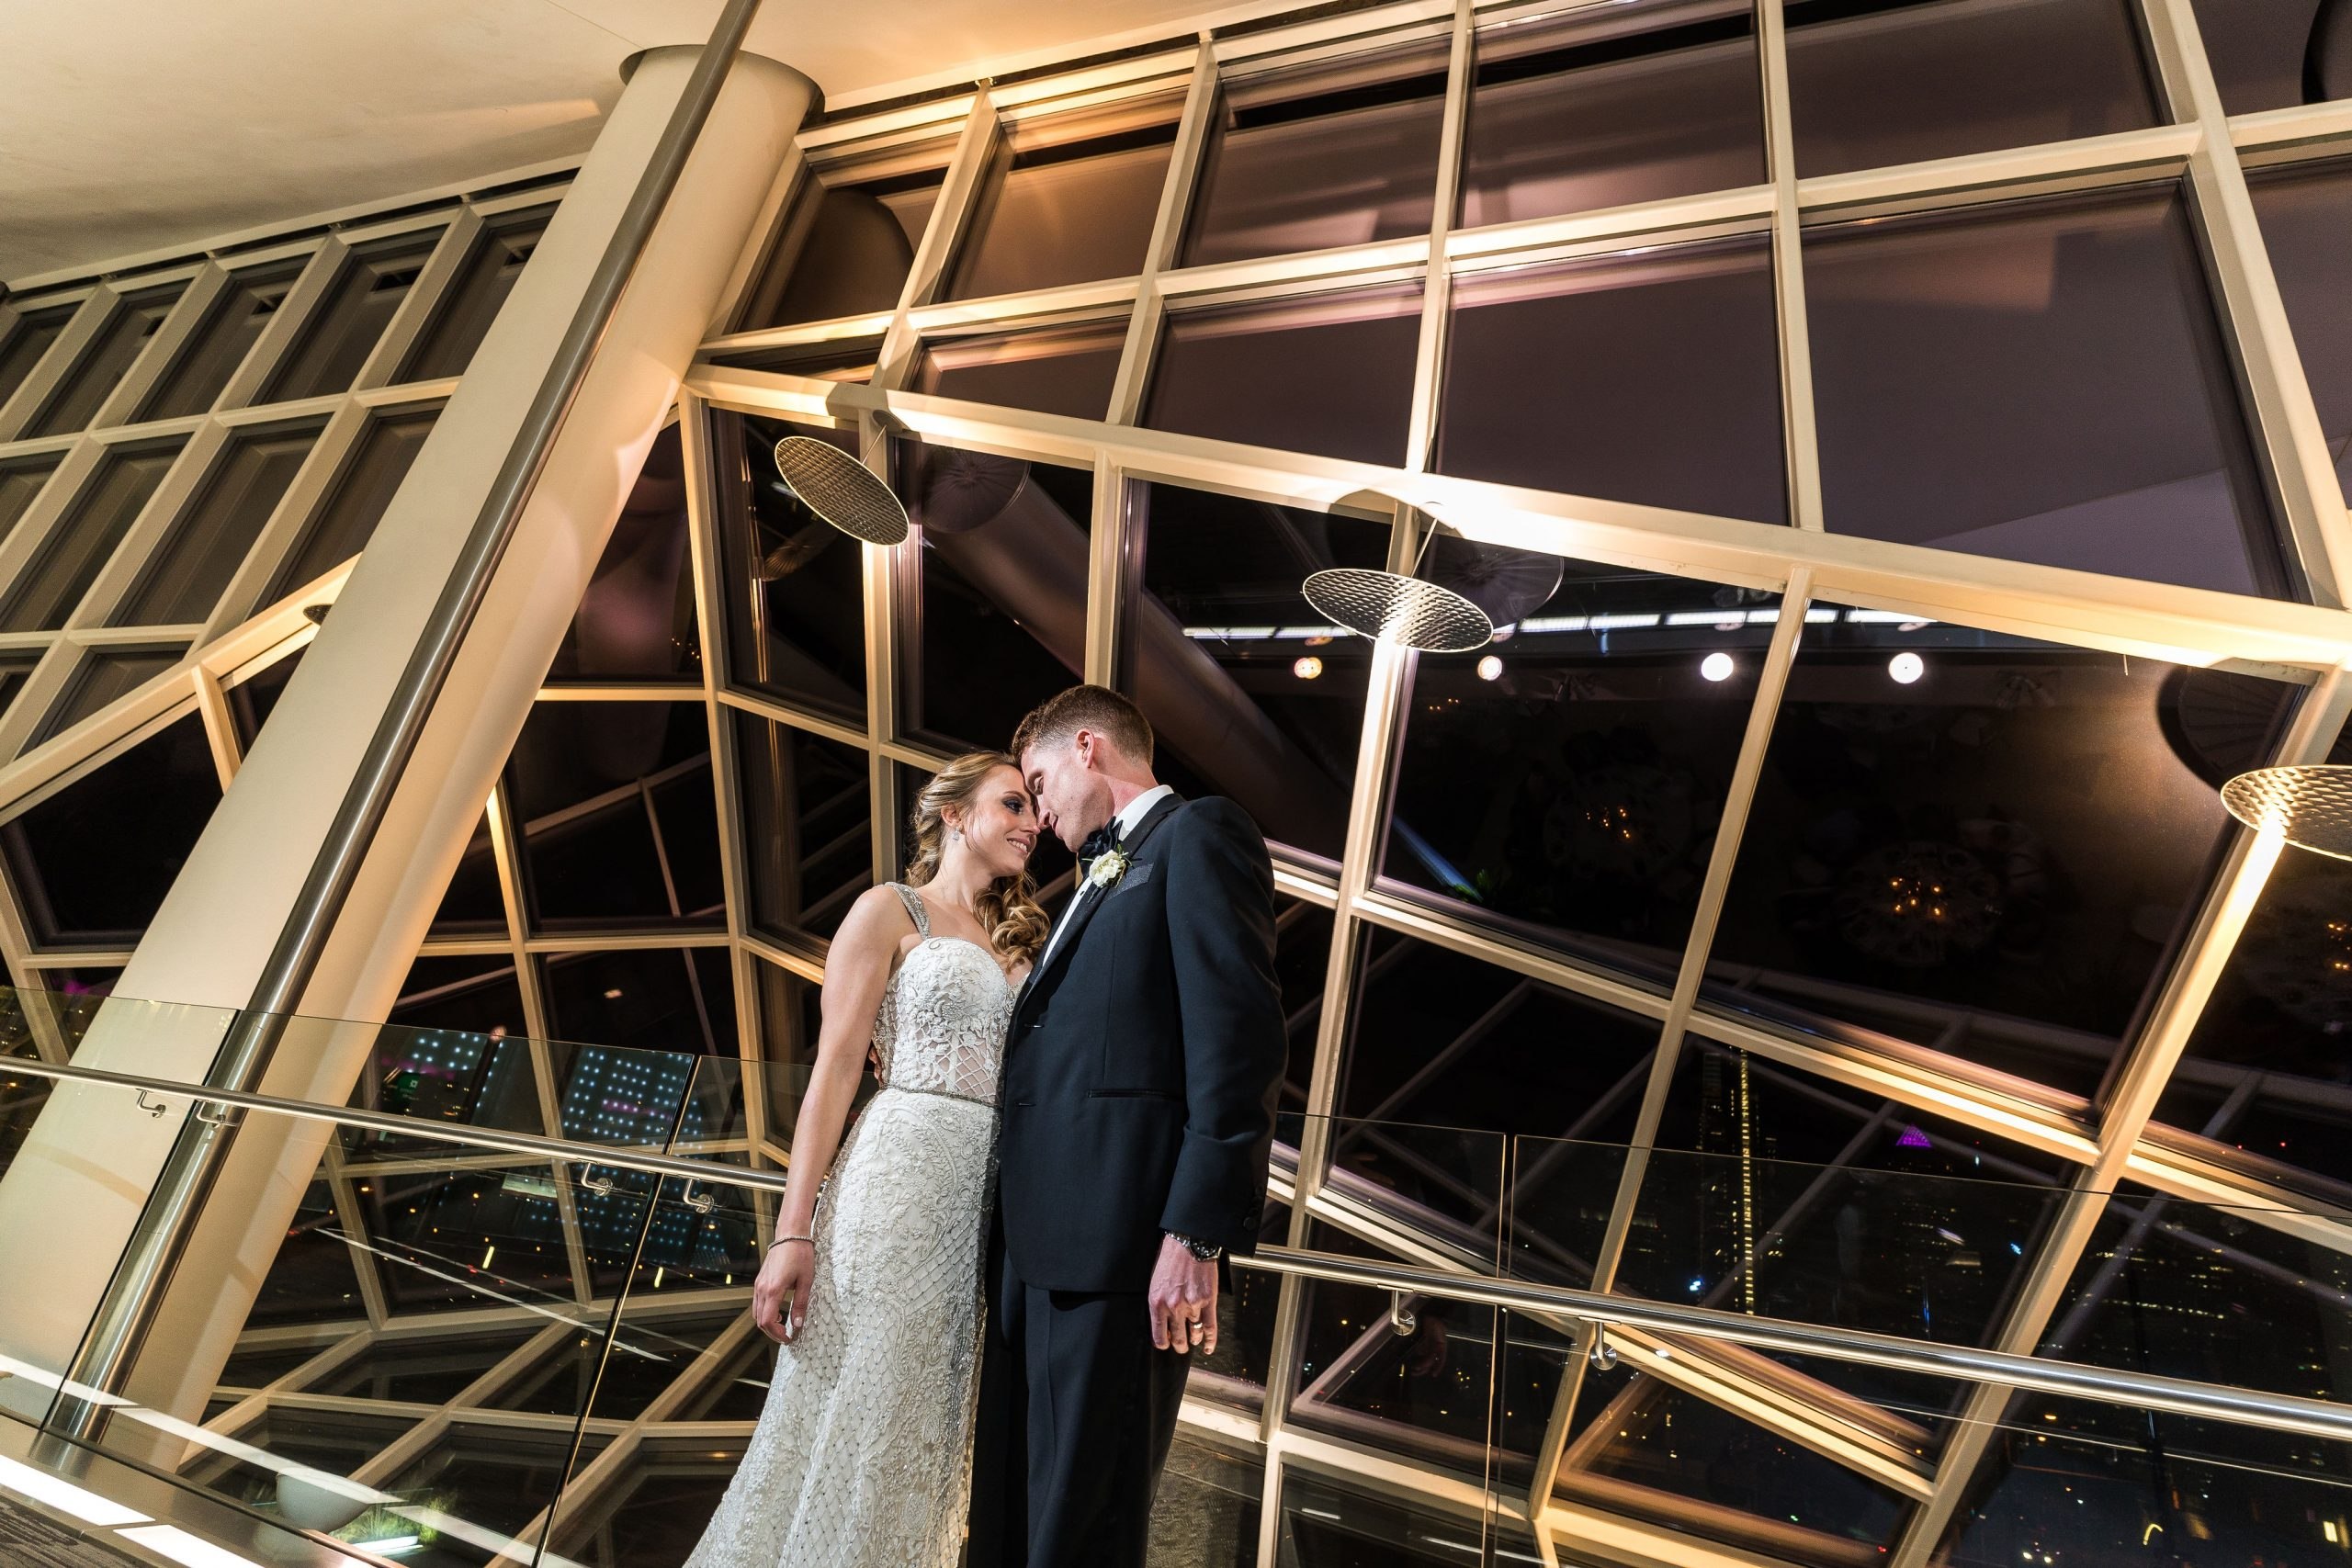 A newly married couple posing in front of the unique windows at JG Domestic at Cira Centre wedding venue